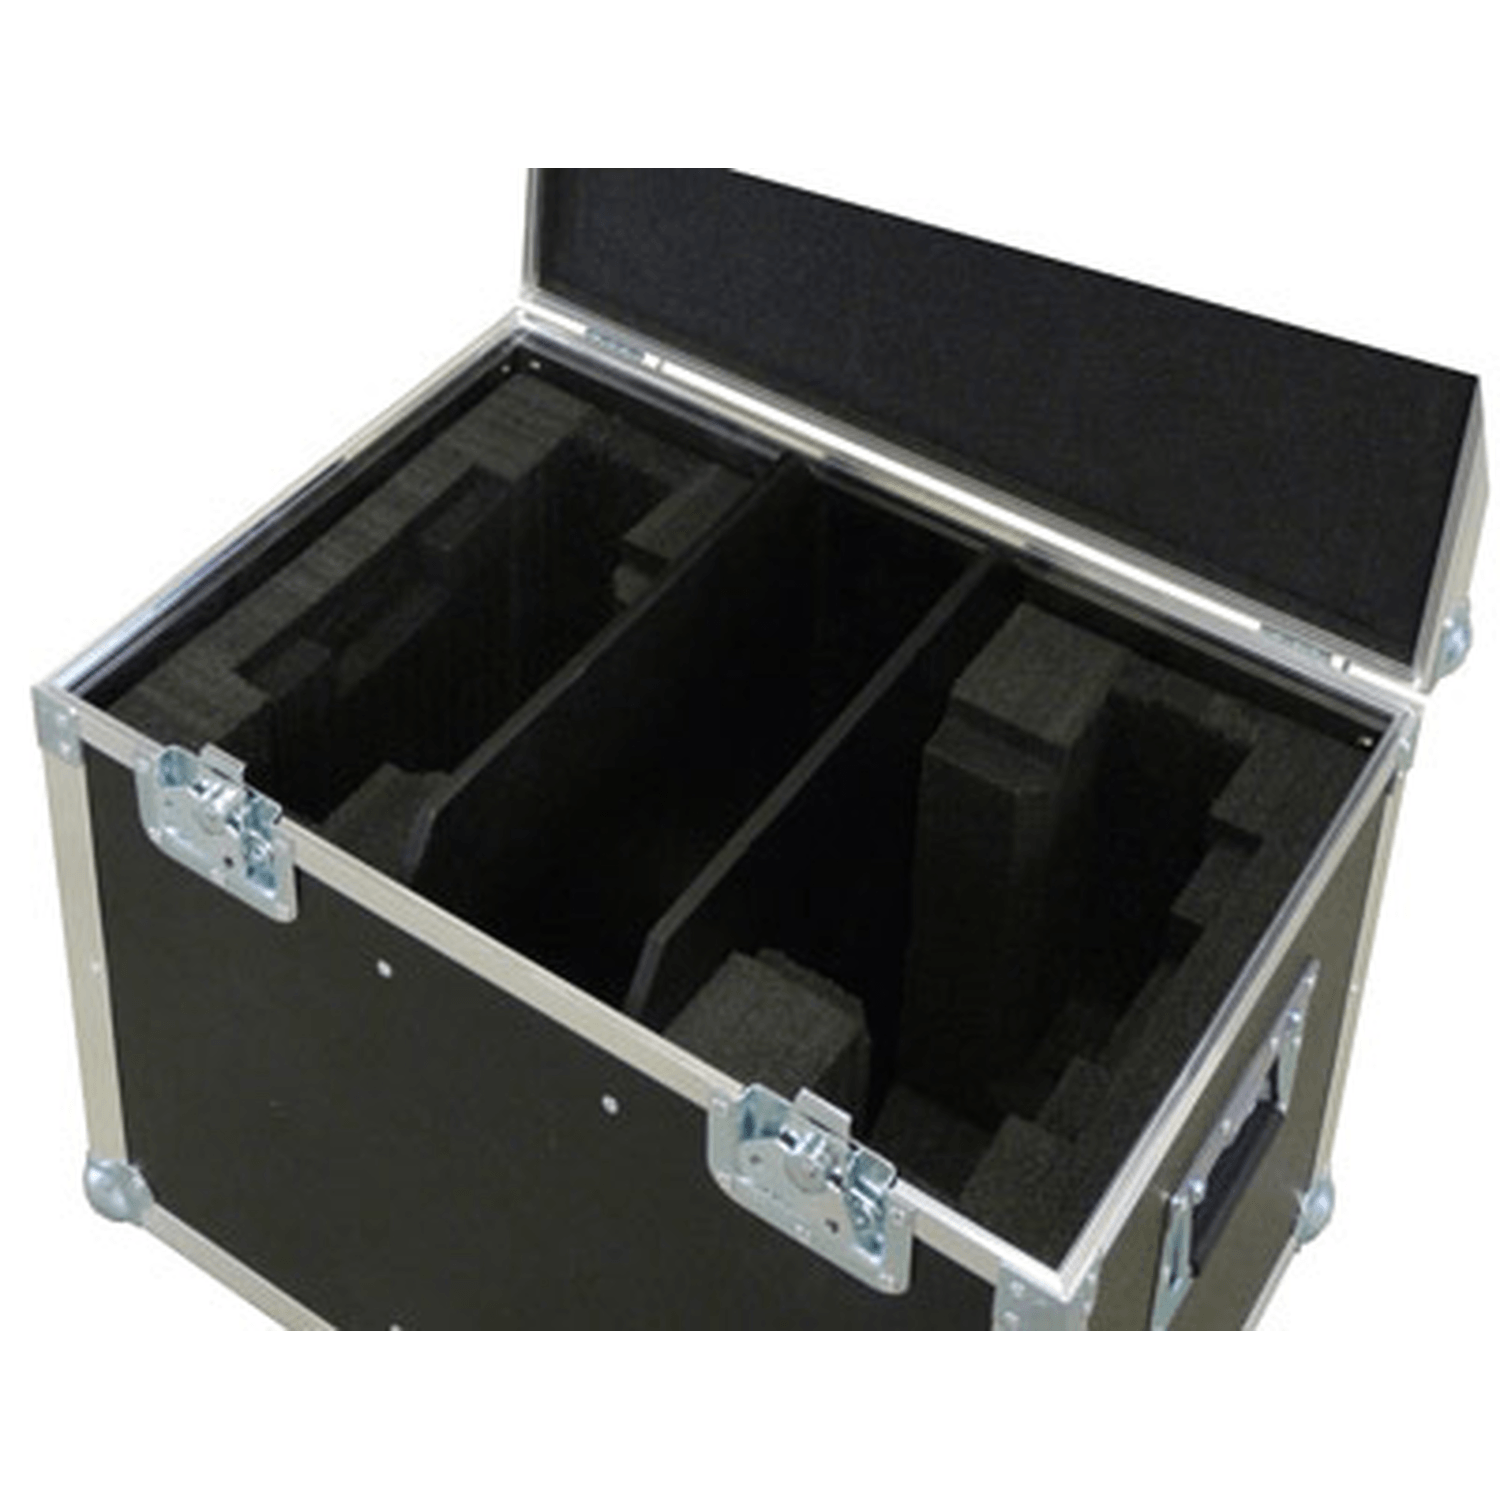 Jb Lighting Service Jb Lighting Case Für 2 X Jbled A7 A4 Sparx7